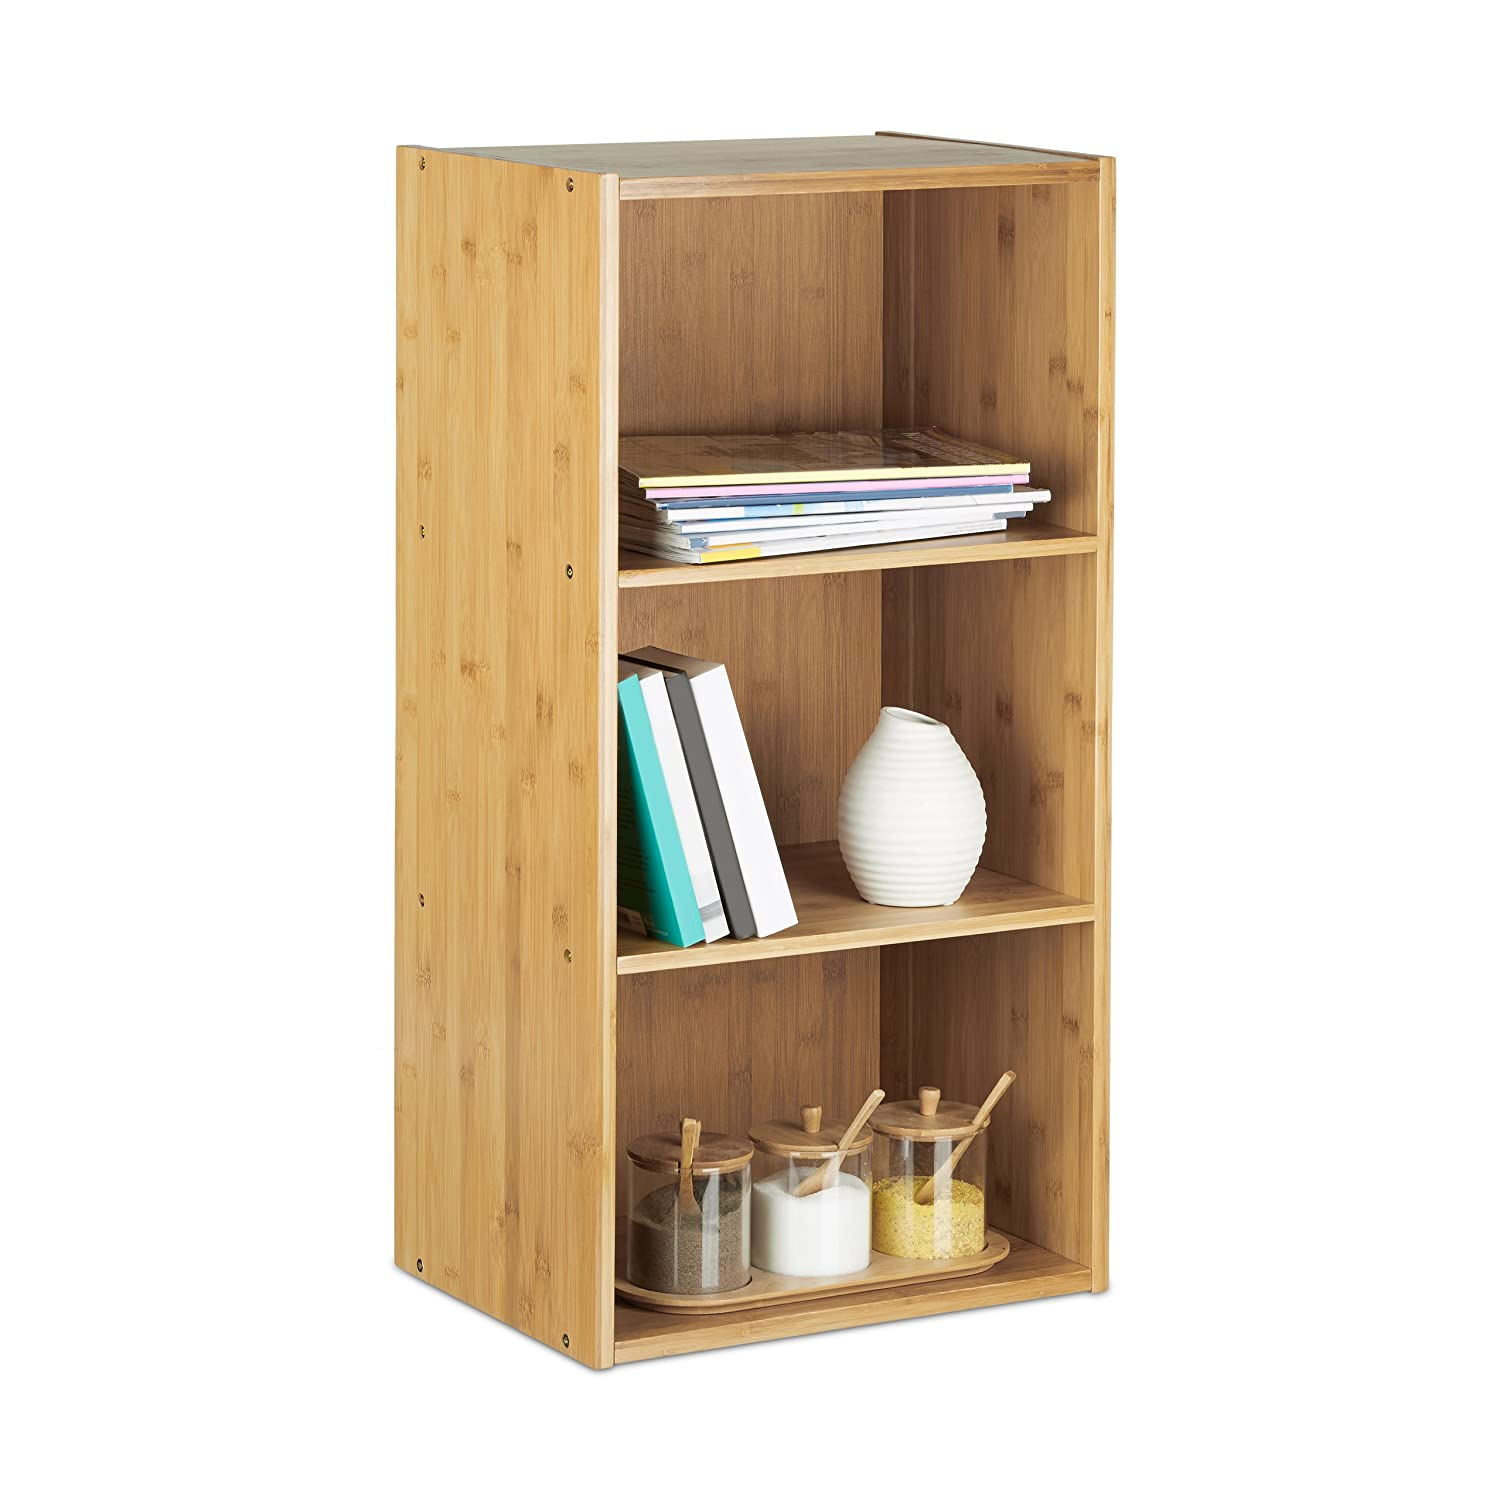 Relaxdays Bamboo Bookcase, 2 Shelves, HxWxD: 53.5 x 41.5 x 29.5 cm, Solid Shelving Unit, Freestanding, natural Brown 10020286_340